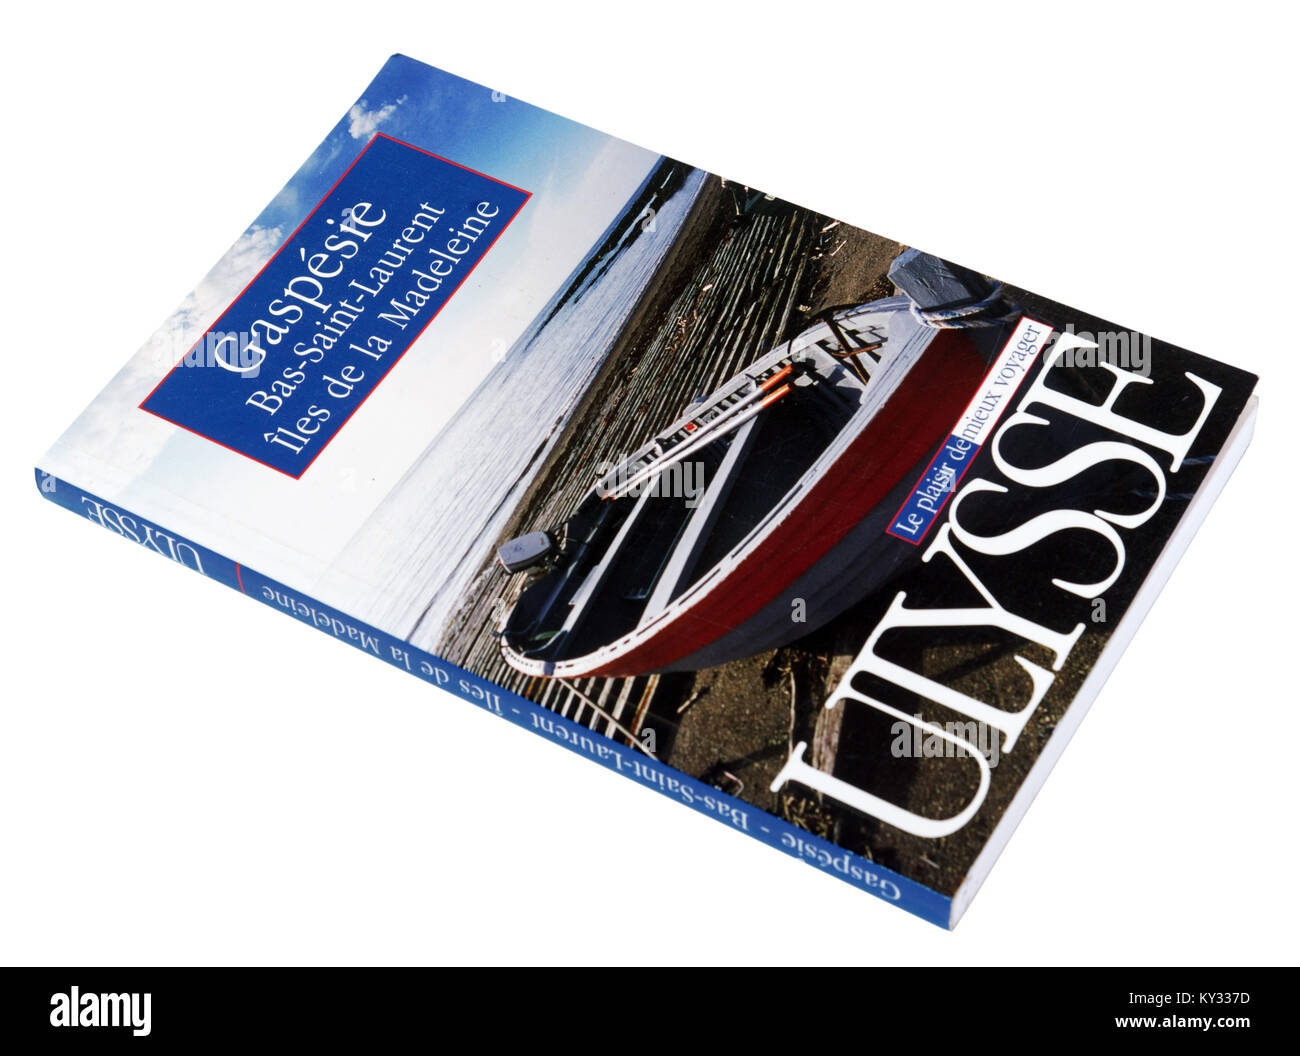 The Ulysse guide to Gaspesie, Bas St Laurent and Iles de la Madeleine - Stock Image